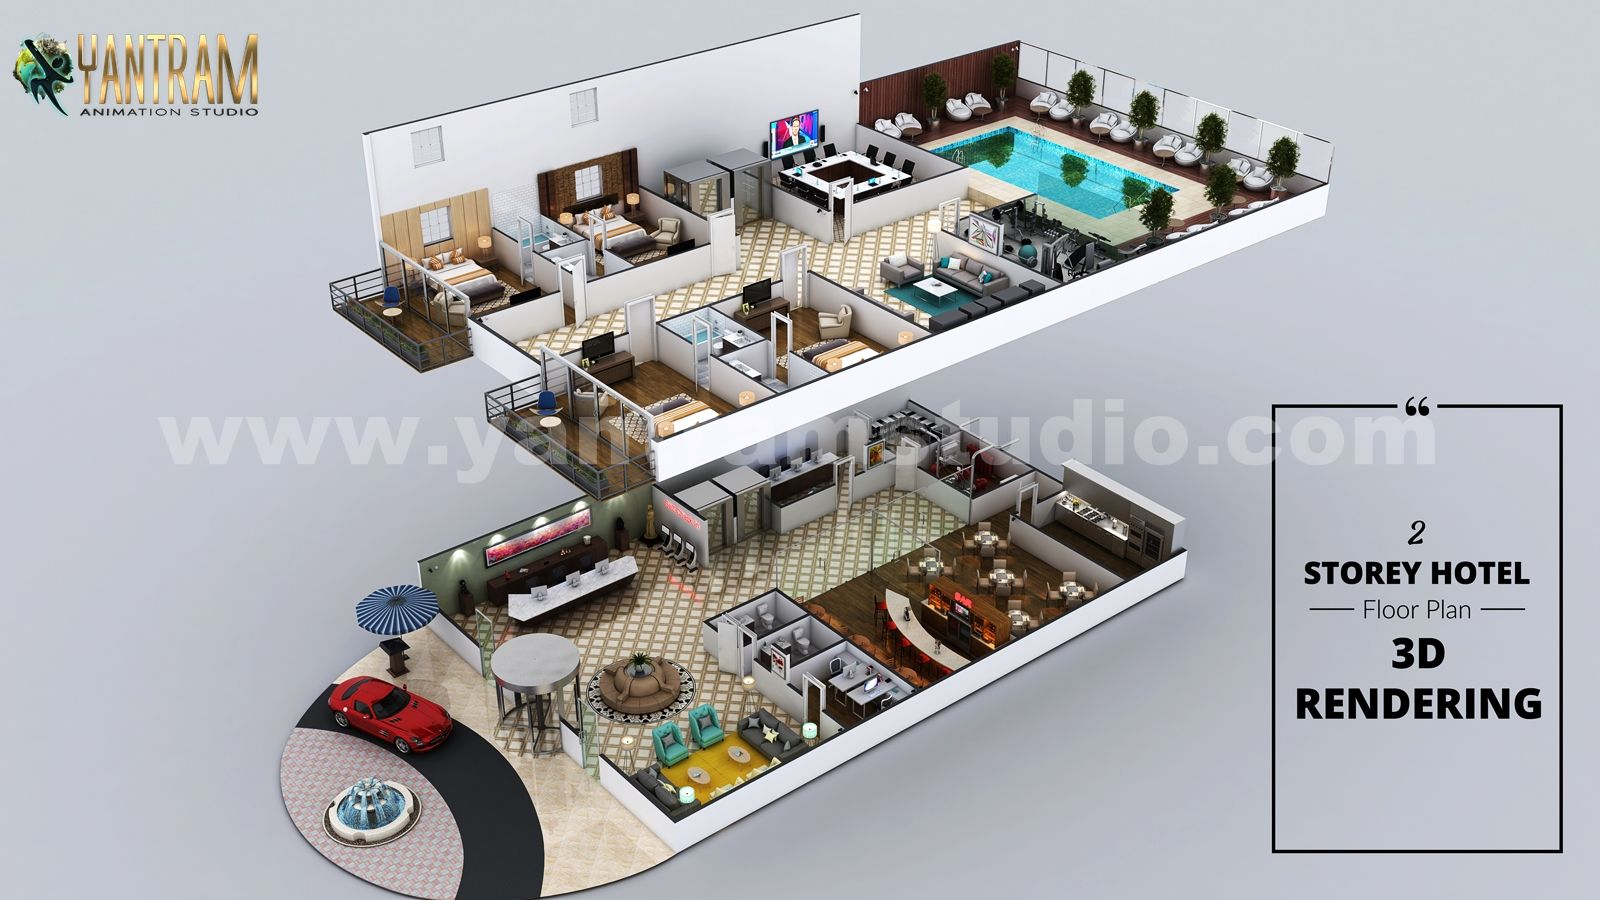 Hotel 3d Floor Plan Rendering With Beautiful Backyard Pool Landscaping By Architectural Studio Hotel Floor Plan Interior Floor Plan Architectural Design Studio